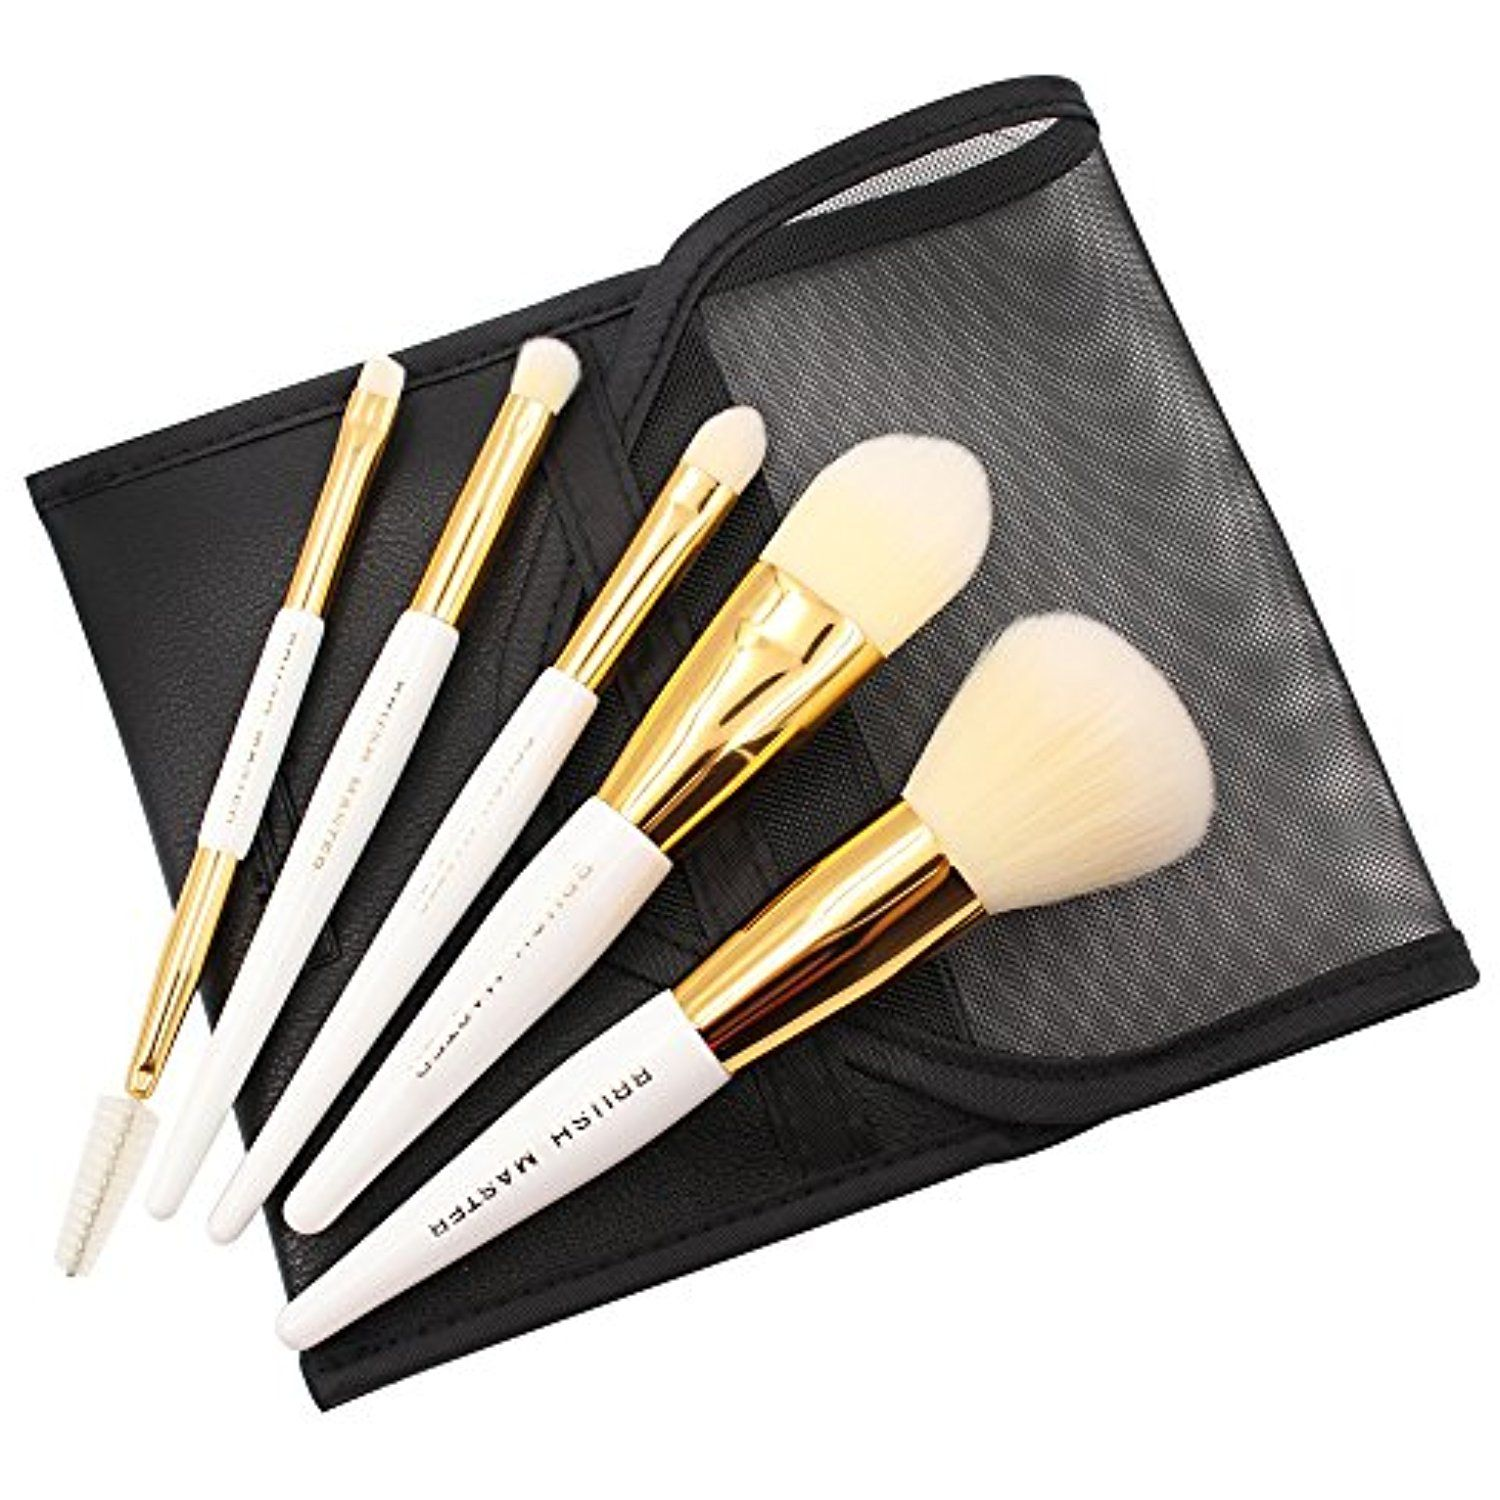 Brush Master 5 Pcs Mini Travel Makeup Brush Set Cosmetic